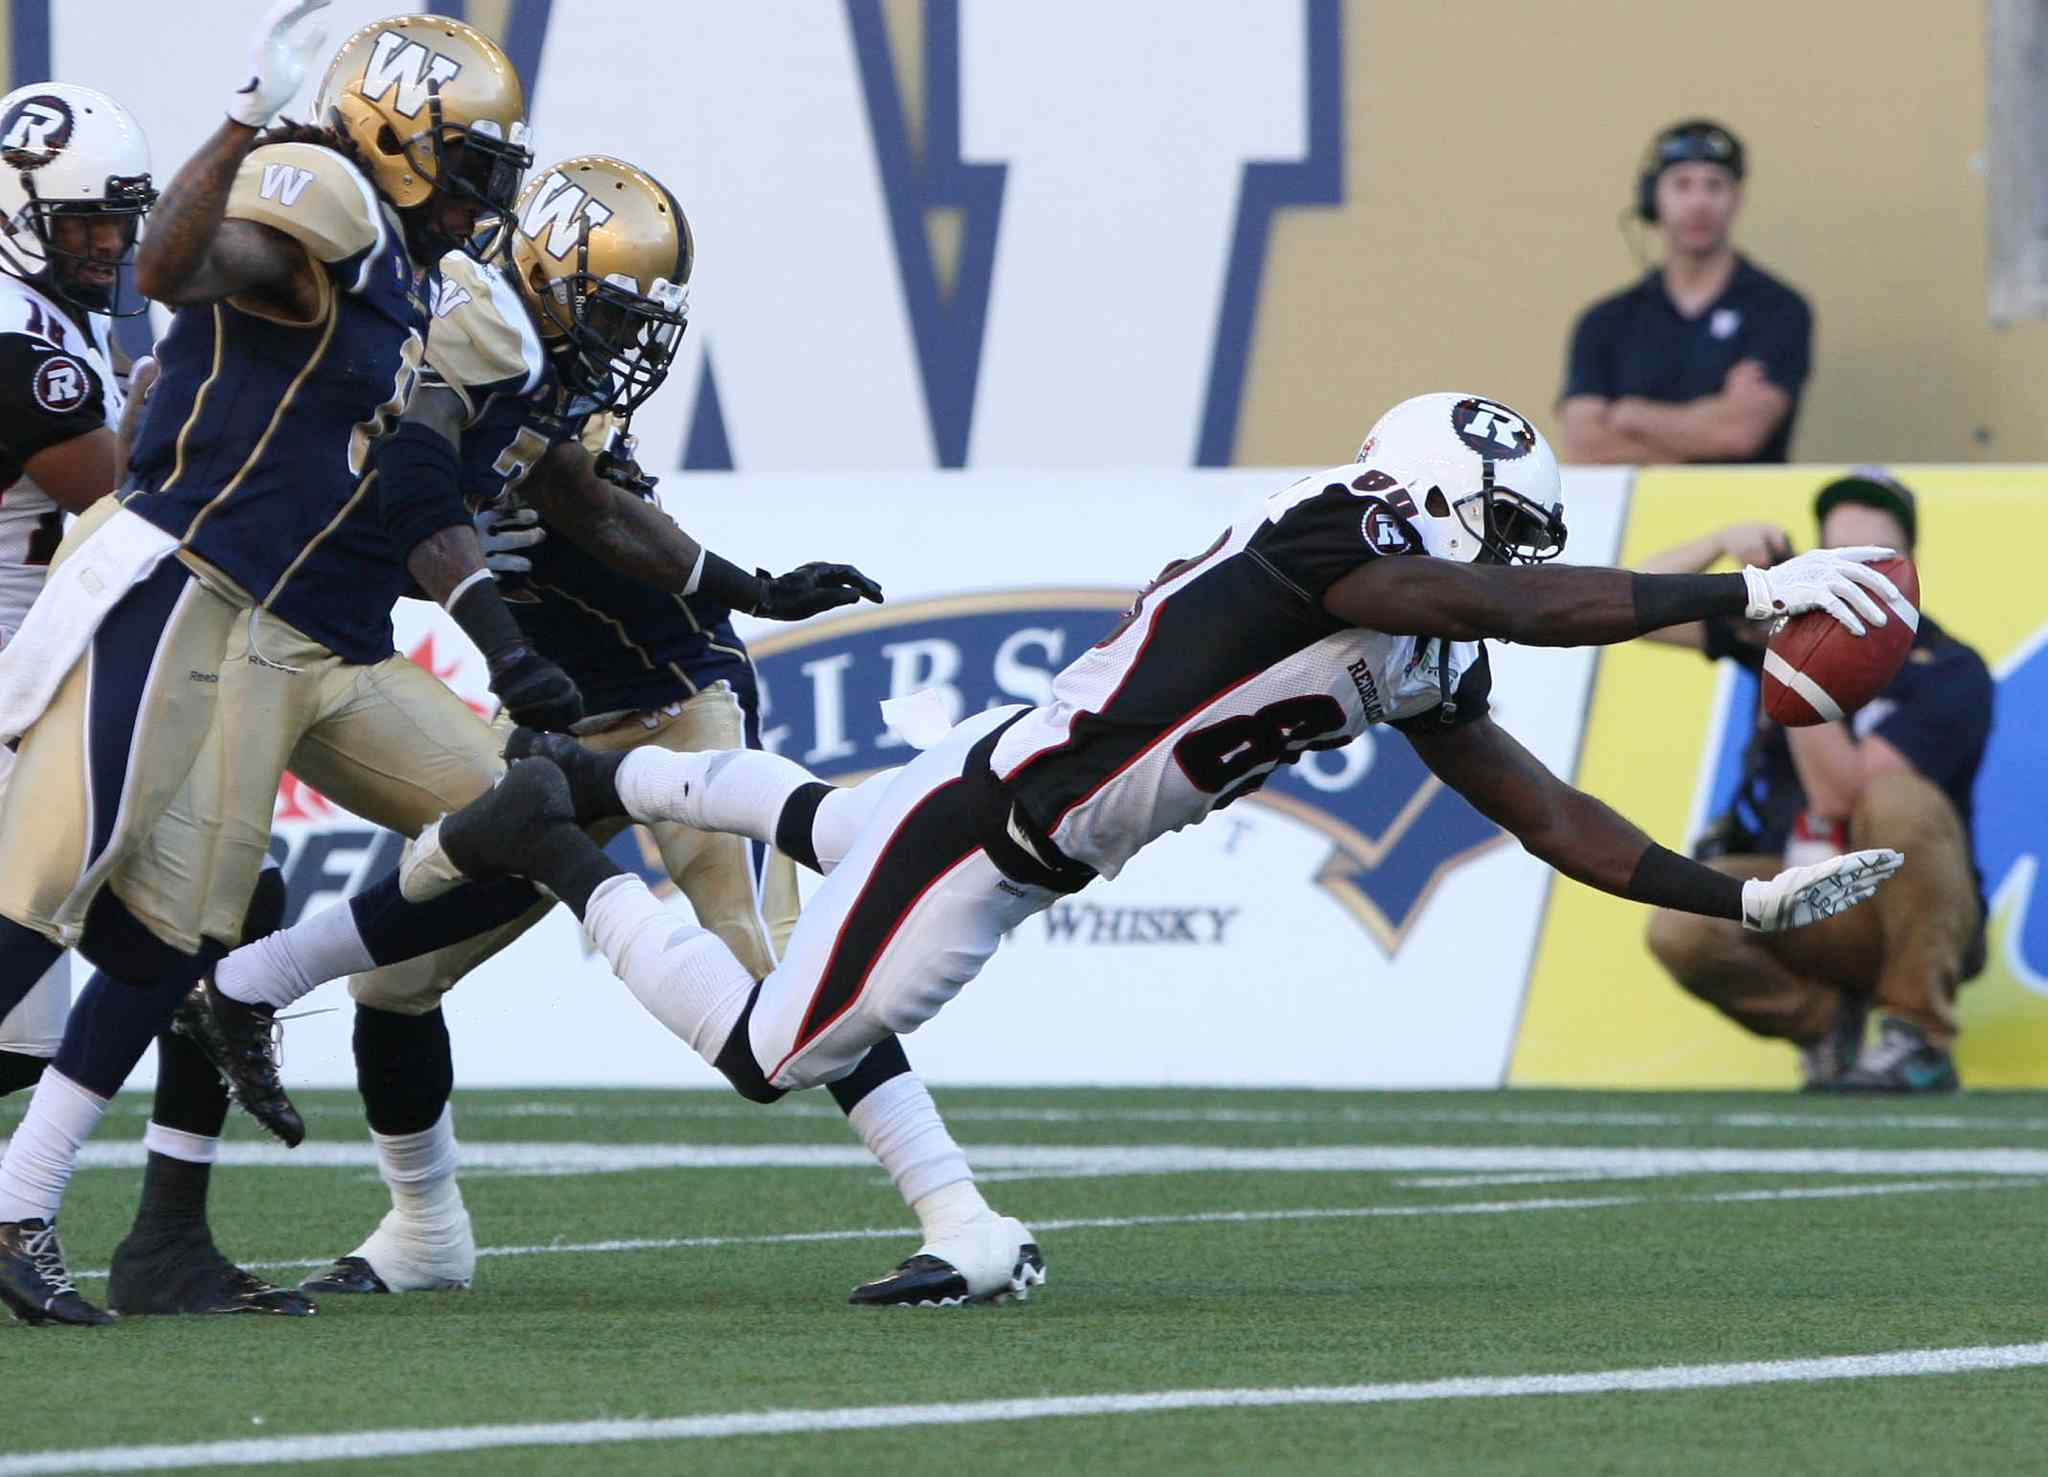 Winnipeg Blue Bombers could only watch as Ottawa Redblacks' Dobson Collins dives in for a first-quarter touchdown during CFL action at Investors Group Field in Winnipeg Thursday night.